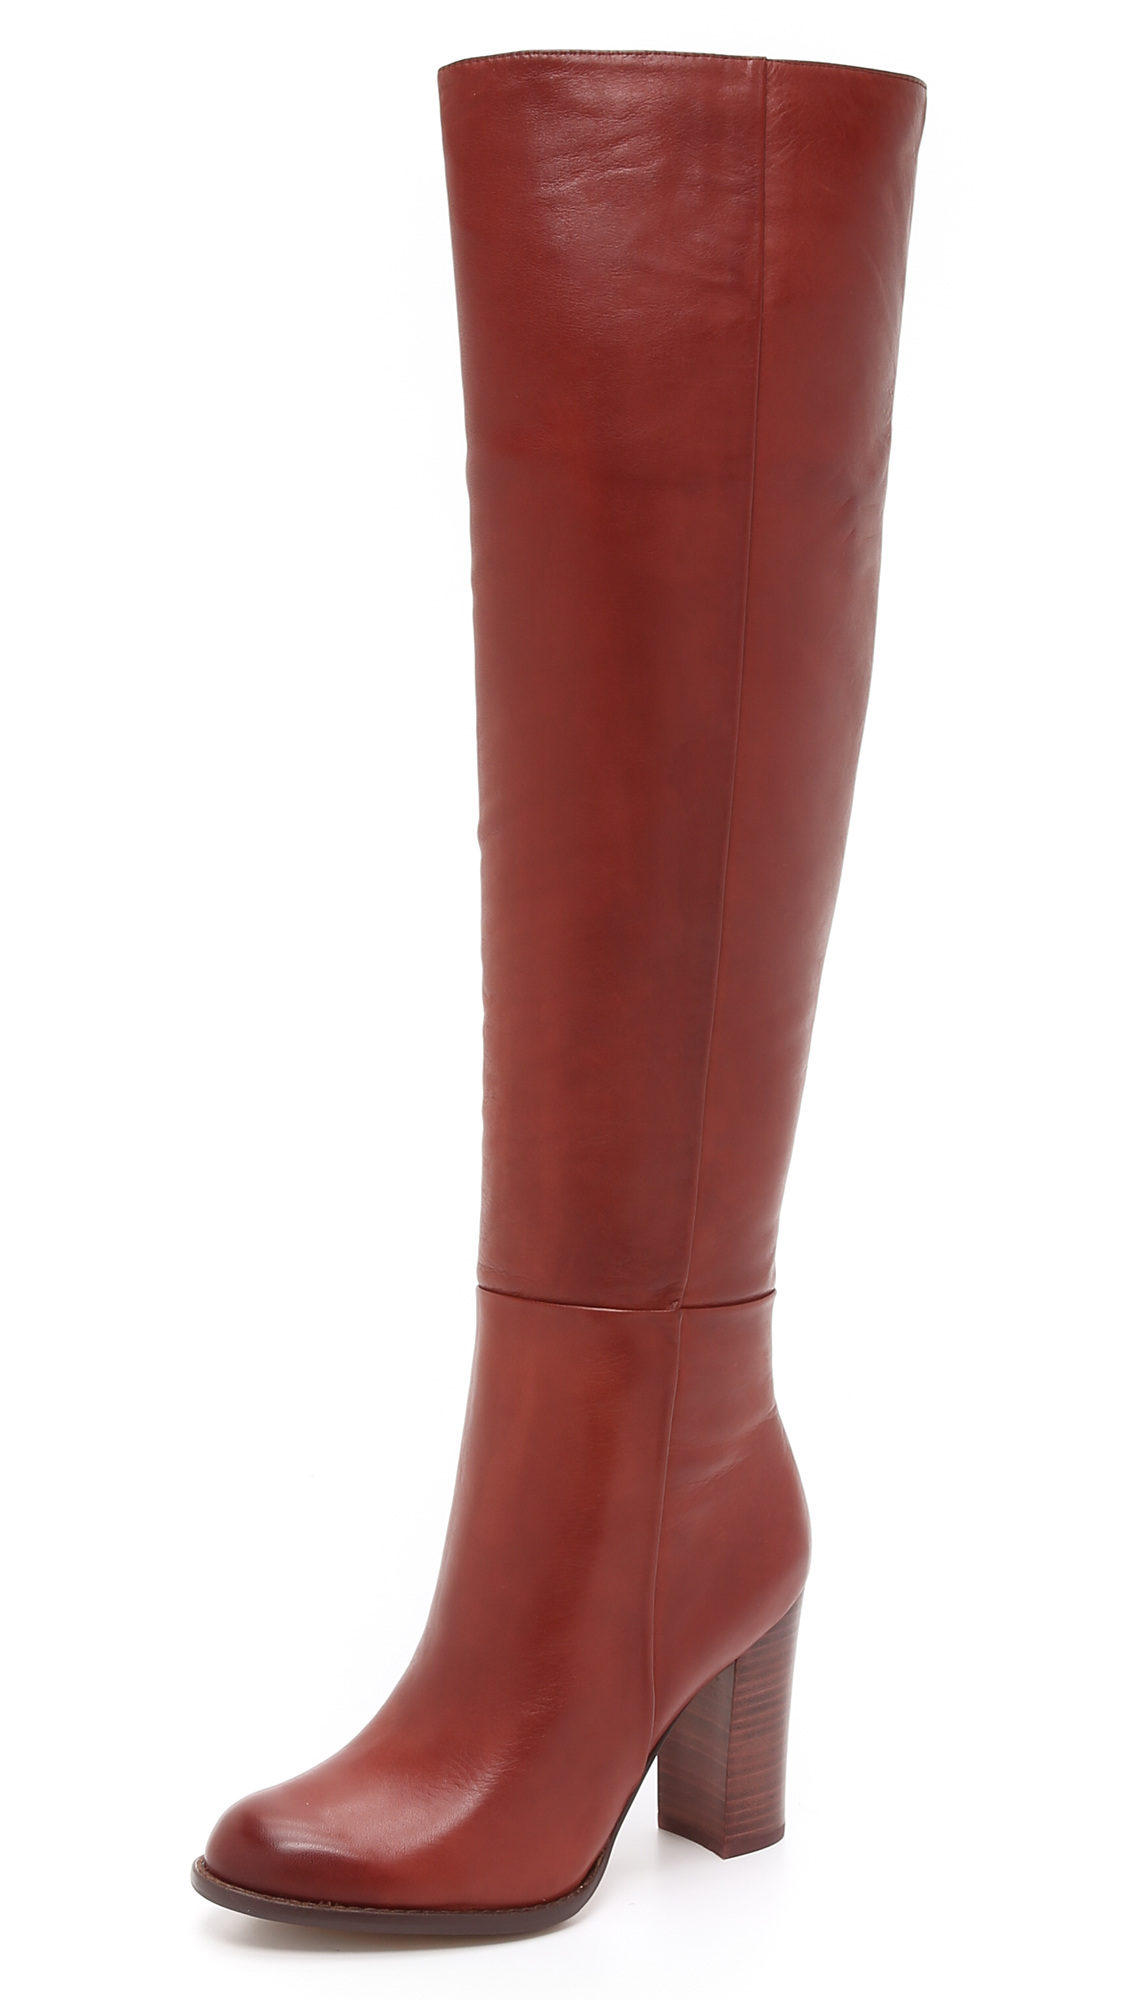 786c9646550d40 Sam Edelman Rylan Tall Boots - Rust Red in Brown - Lyst